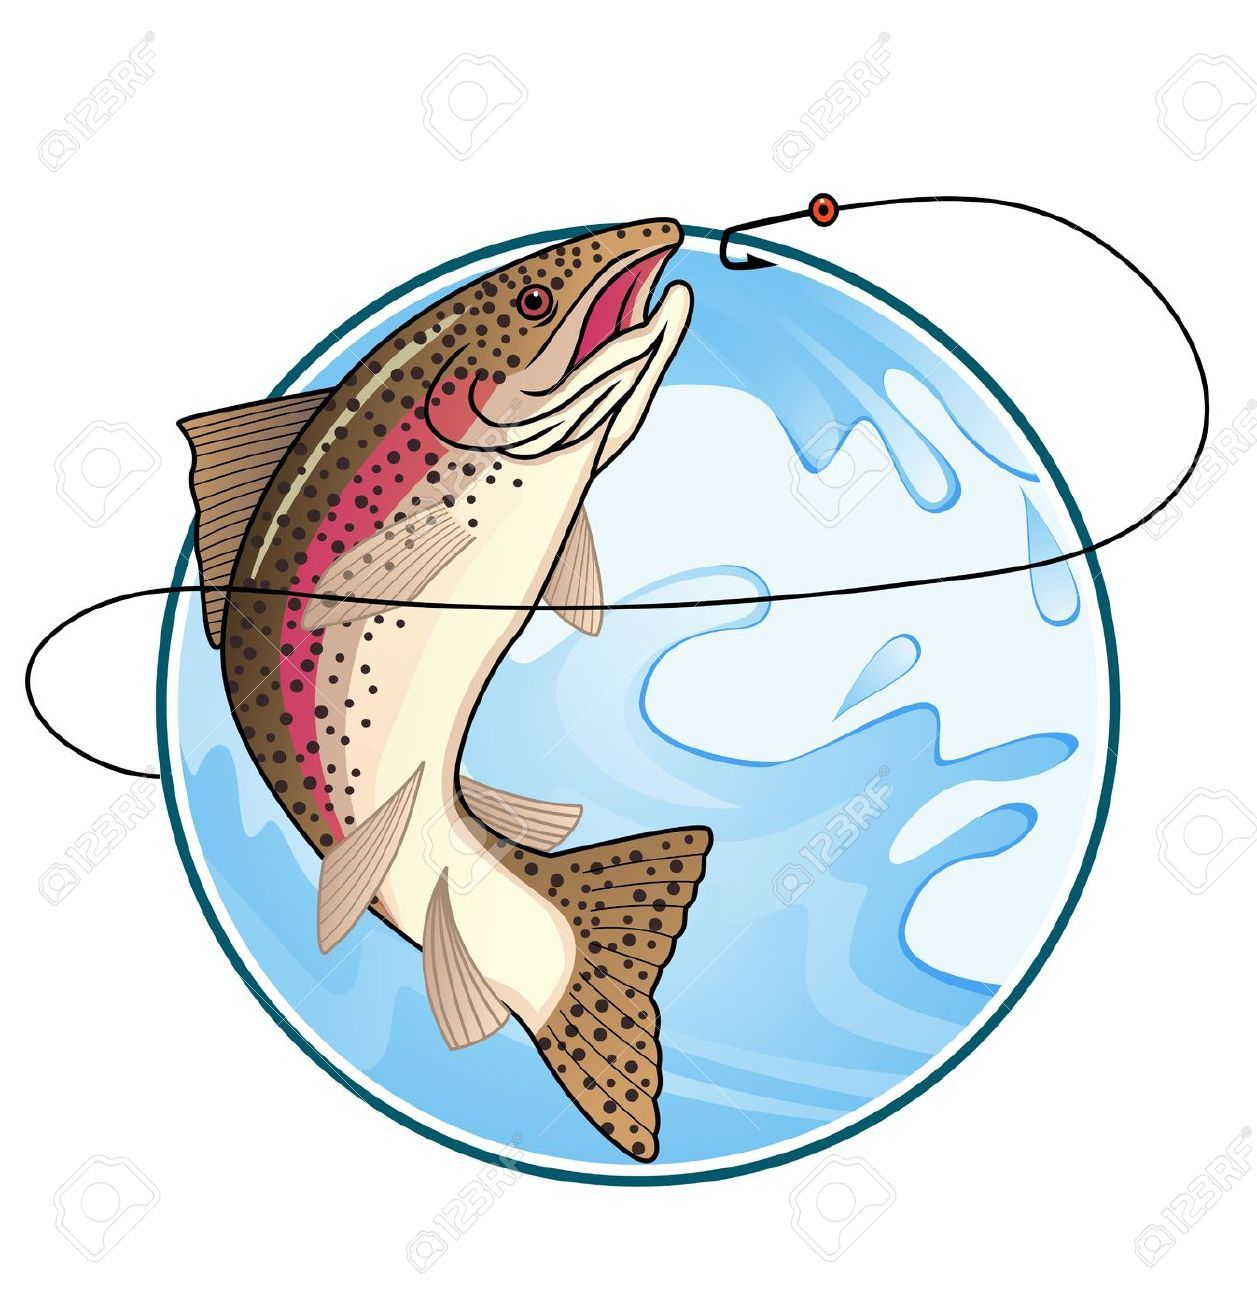 image result for trout jumping out of water pinterest rh pinterest com trout fish clipart Trout Fishing